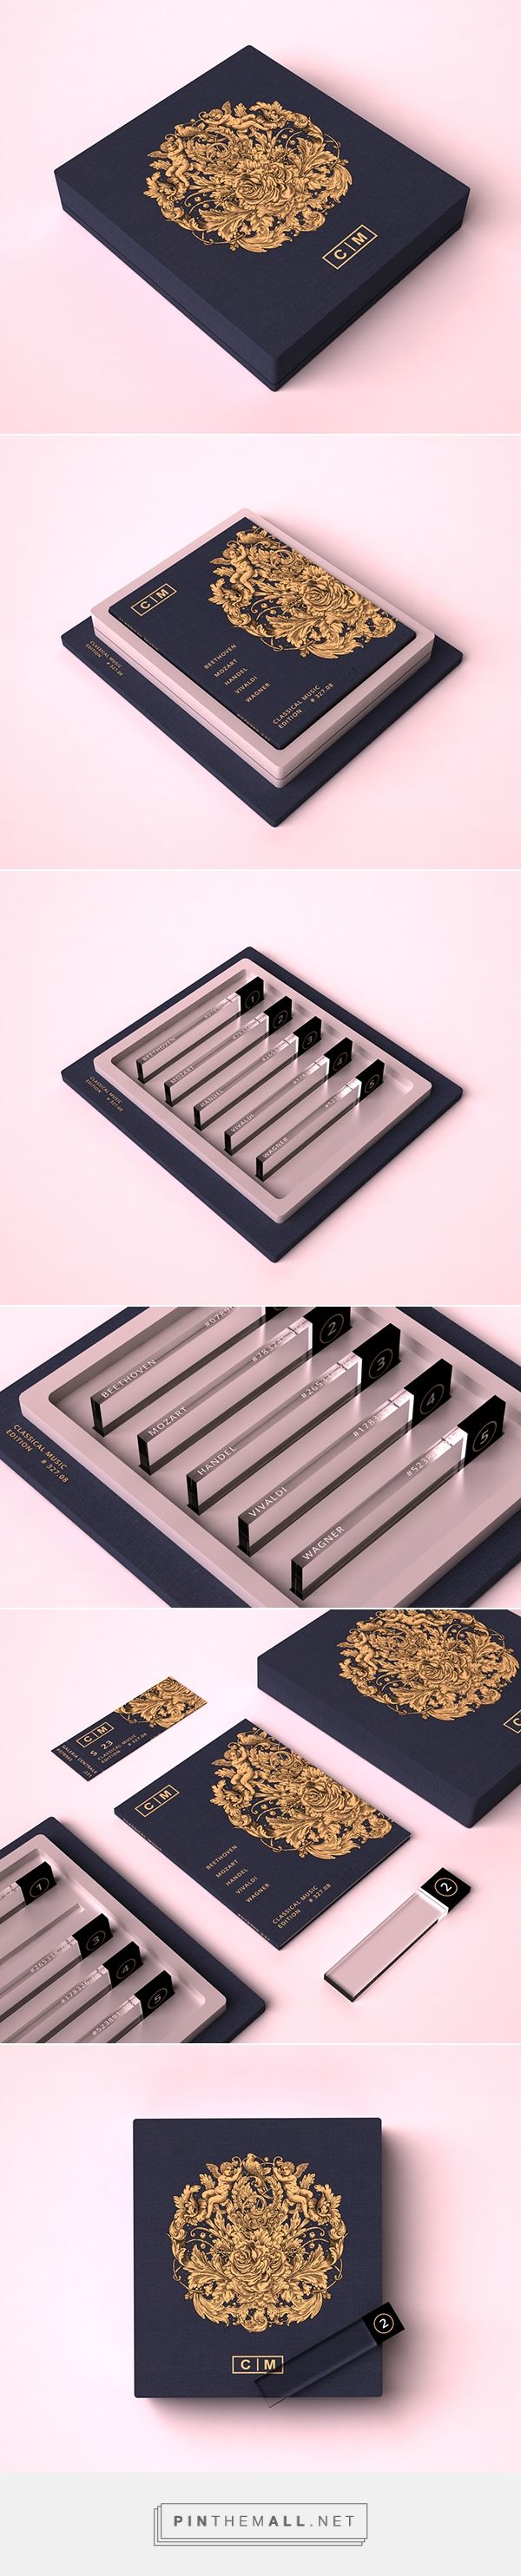 Packaging for a Classical Music Collection PD